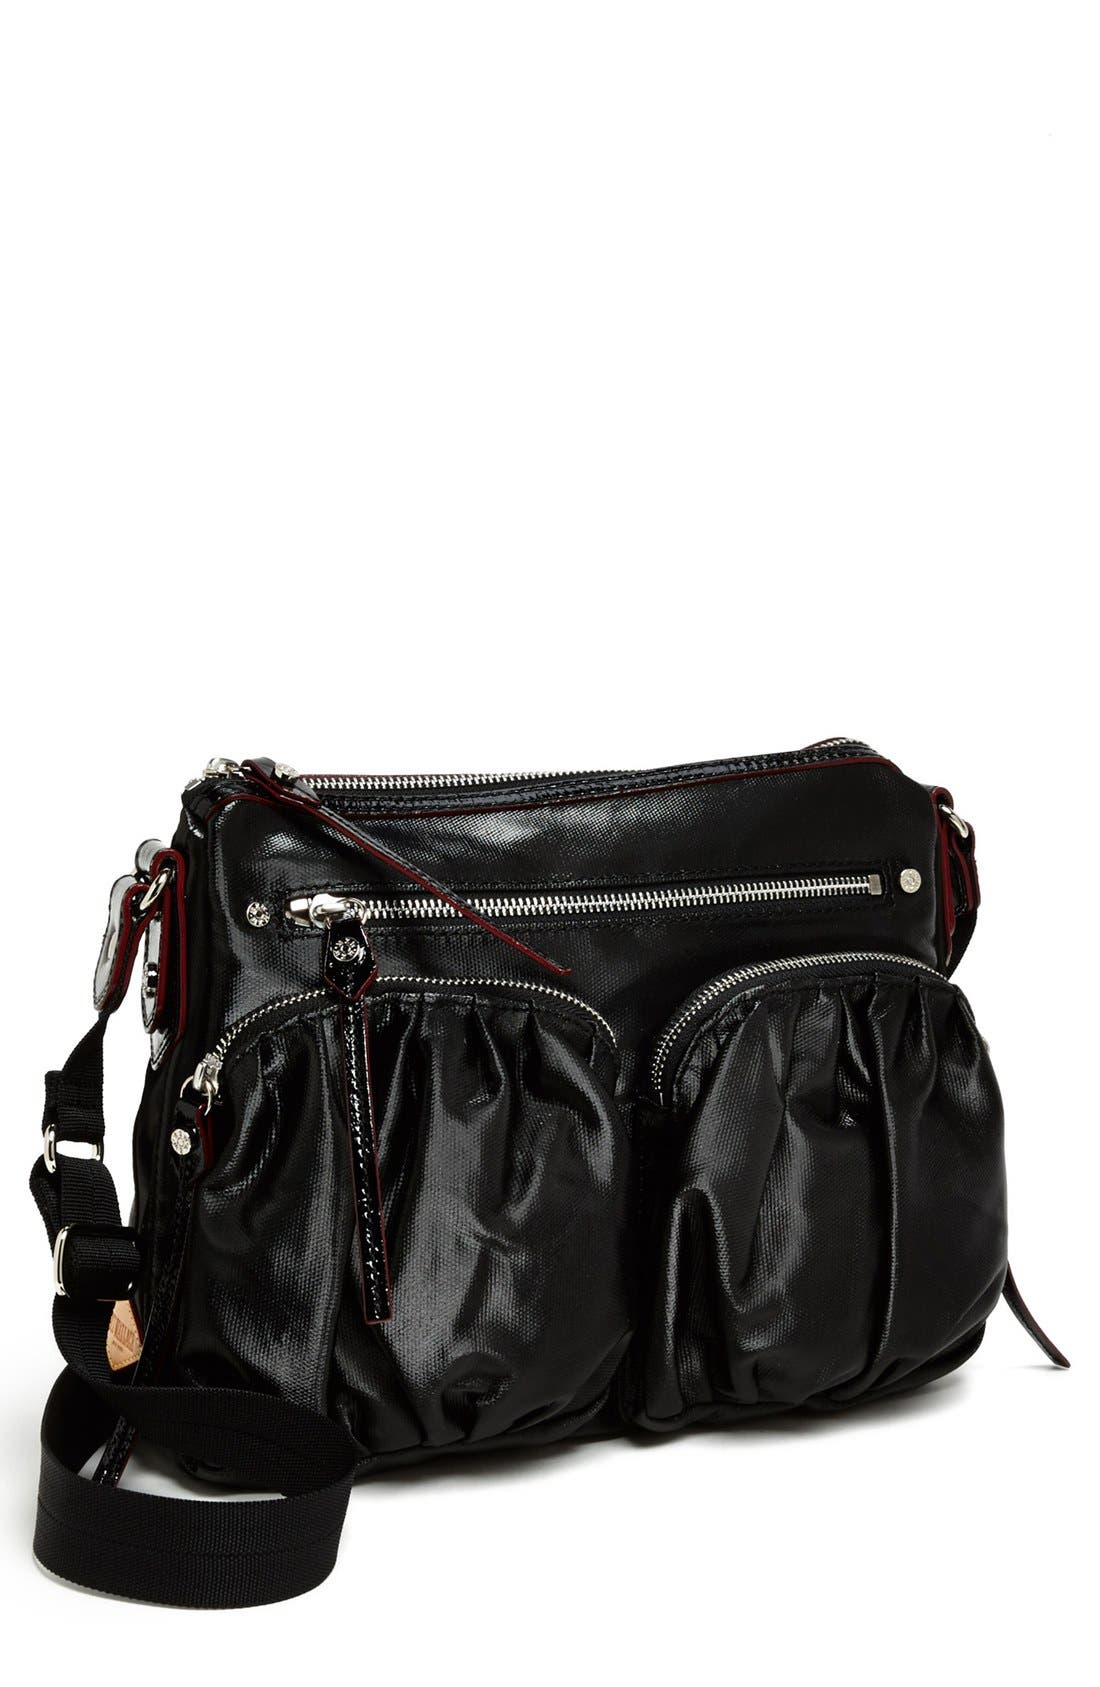 Alternate Image 1 Selected - MZ Wallace 'Paige' Crossbody bag, Small